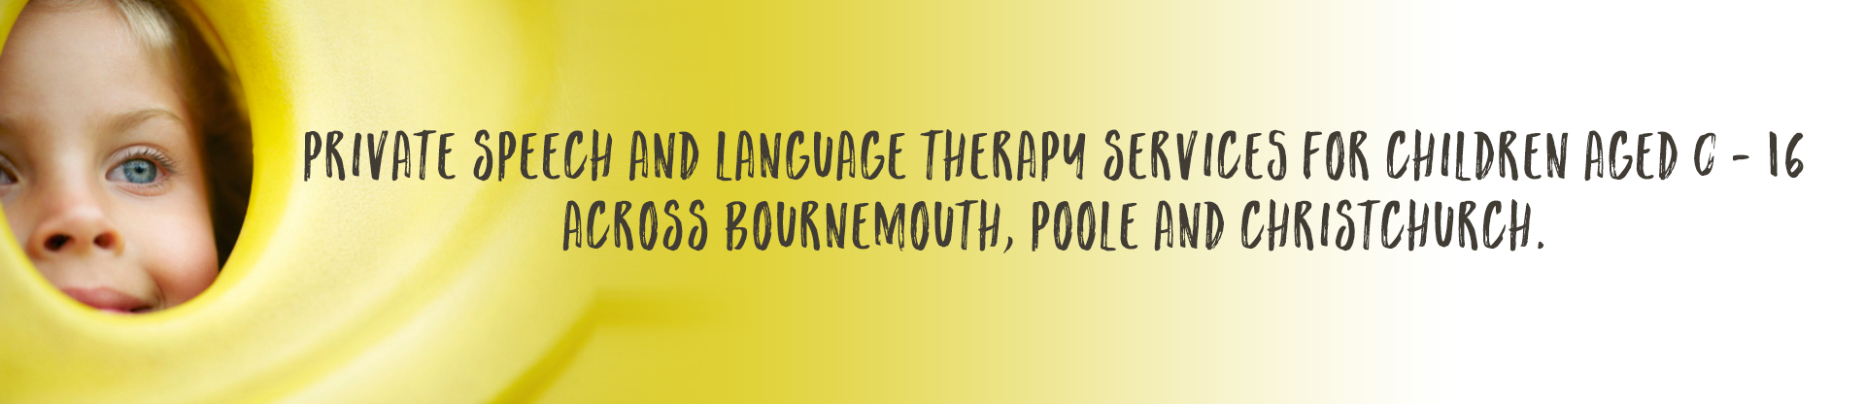 Private Speech Therapy In Bournemouth, Poole and Christchurch